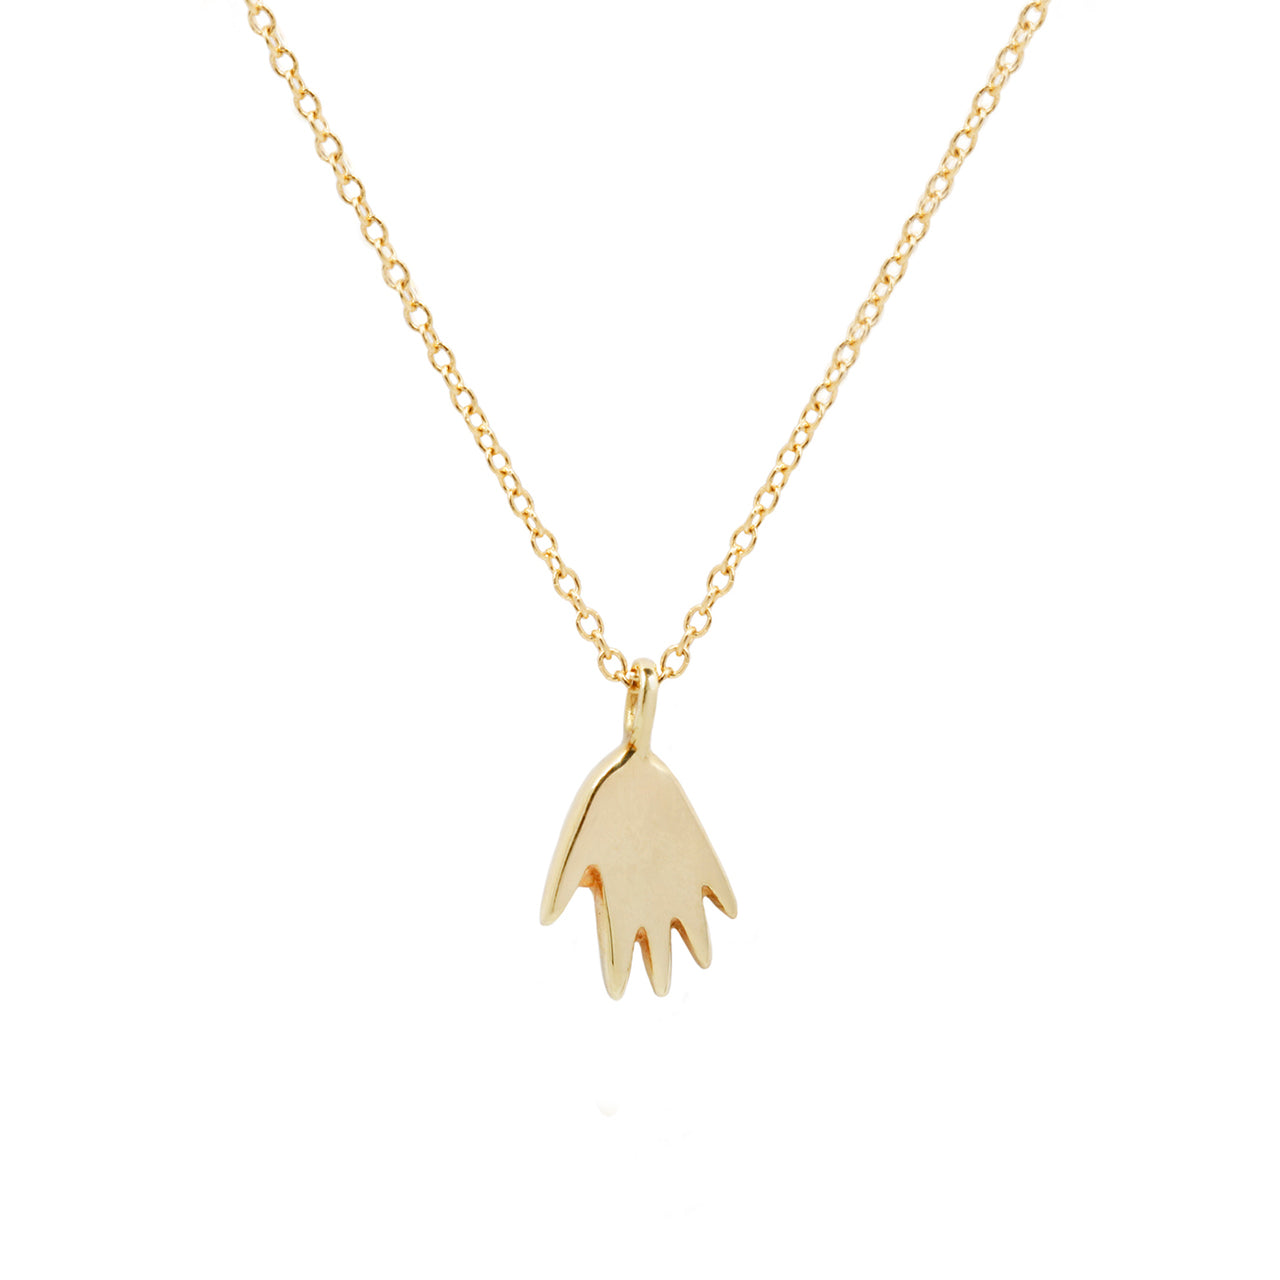 AILI x BLEUBIRD Hand Necklace